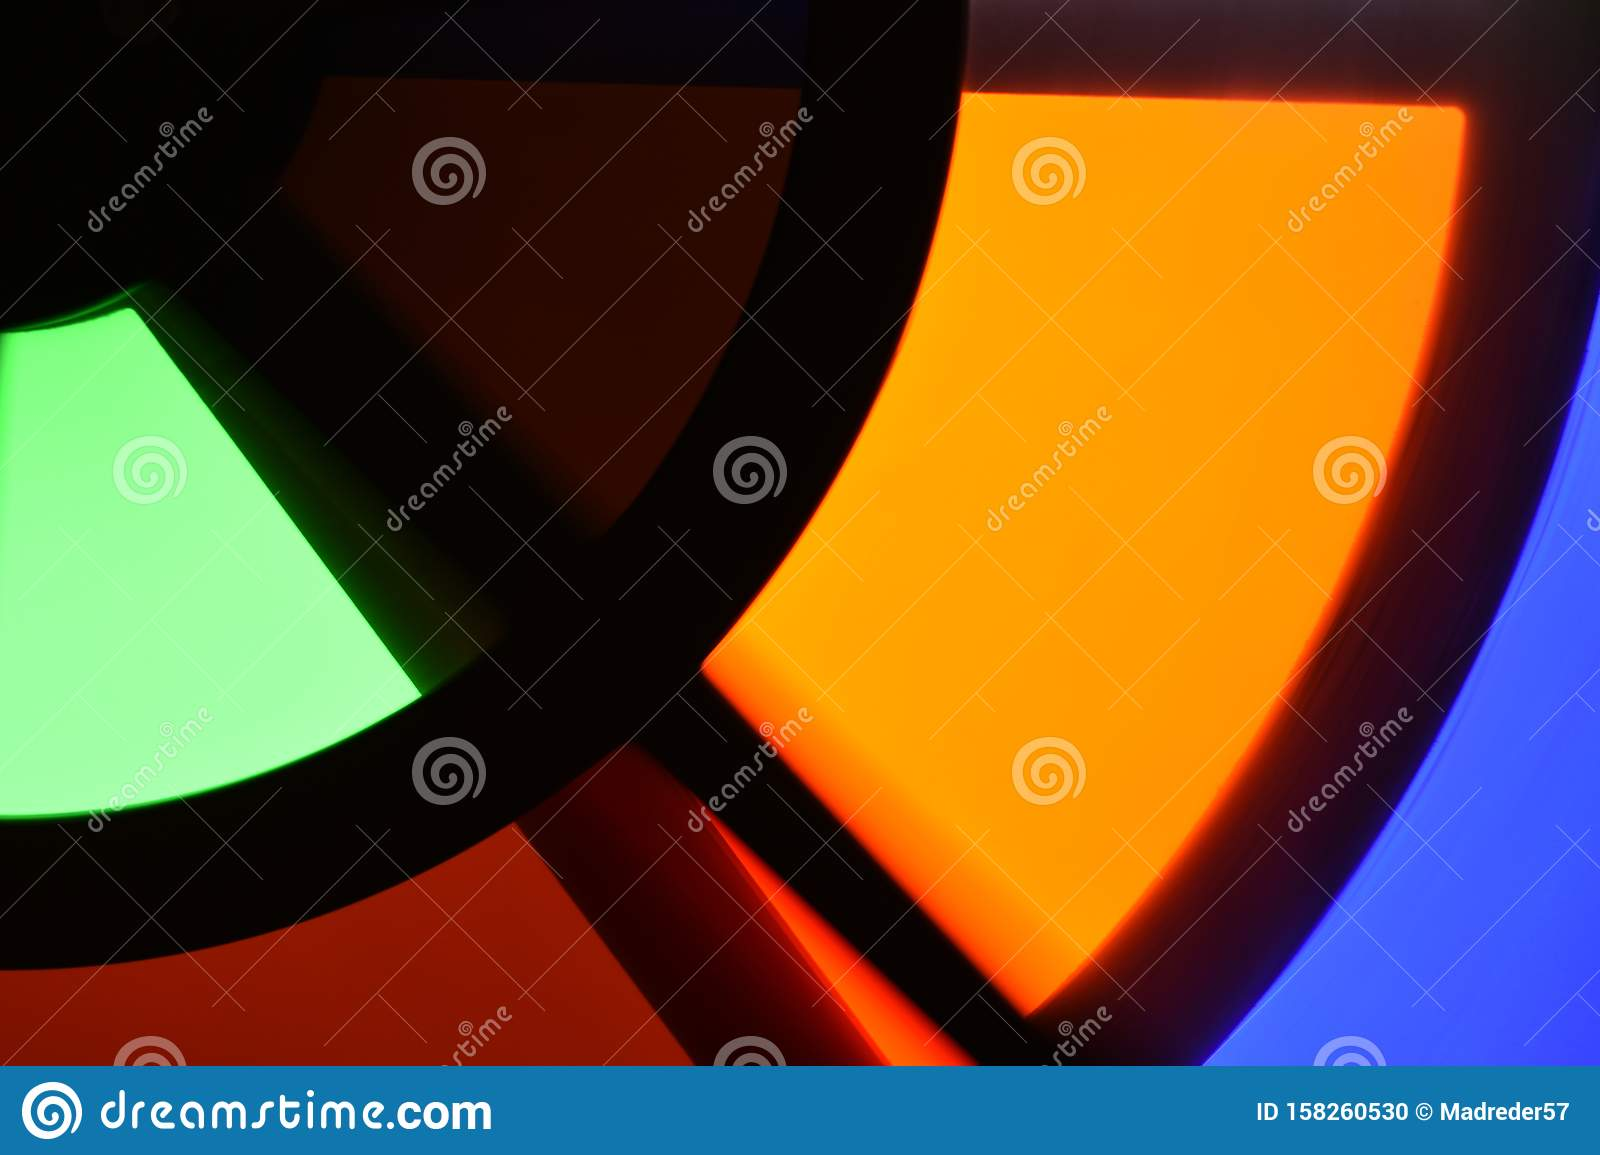 Colorful orange abstract geometric shapes